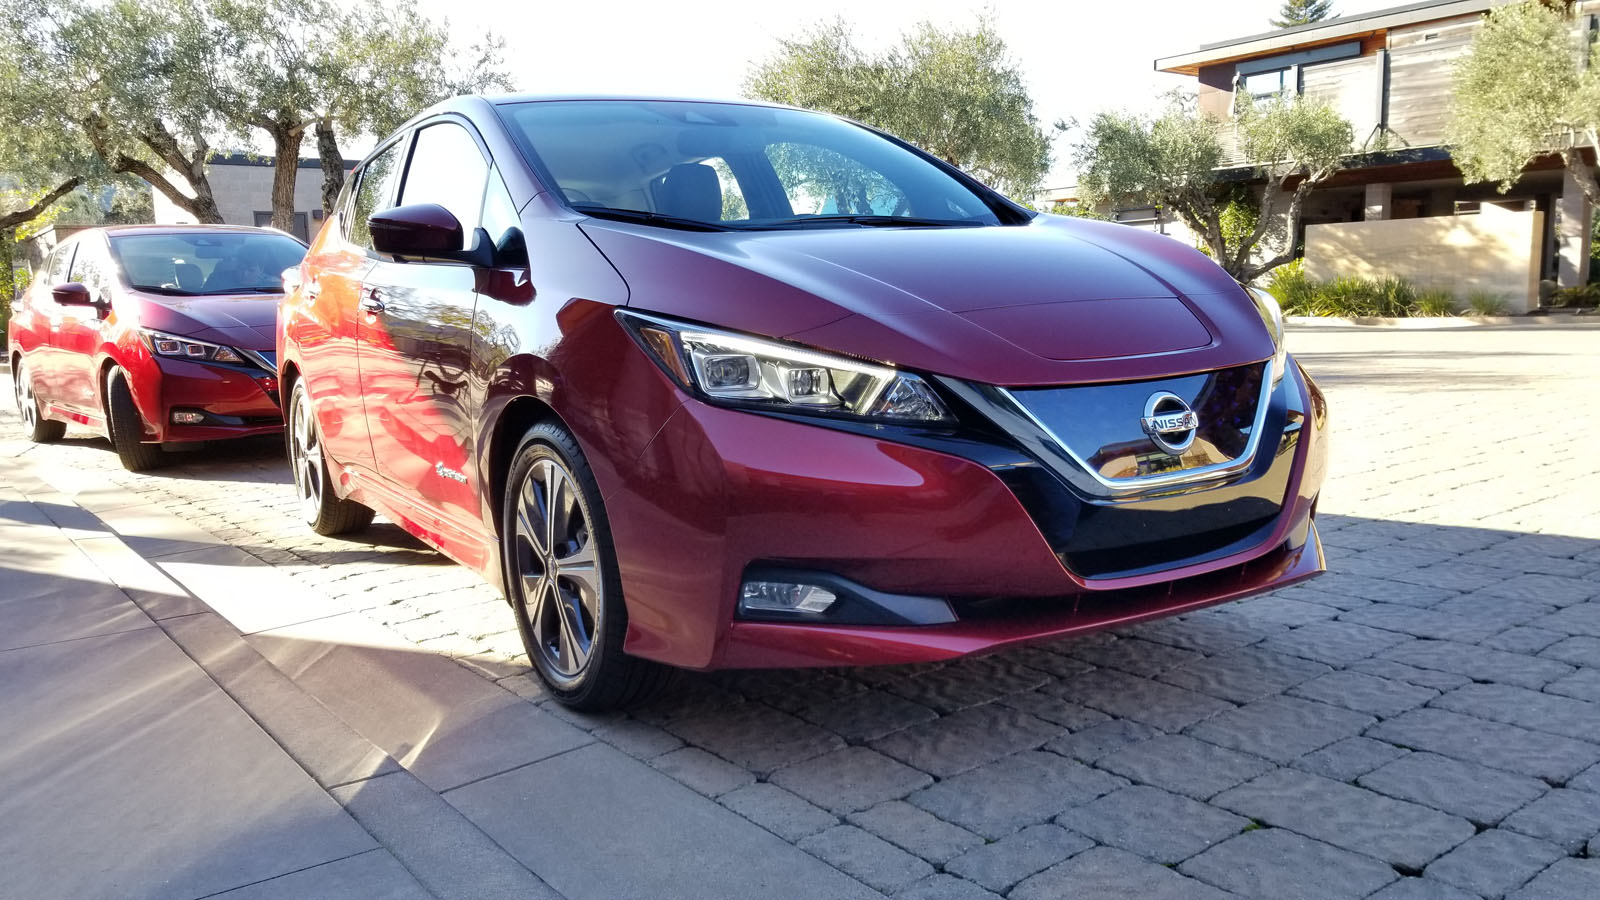 2018 Nissan Leaf Review Chad 12